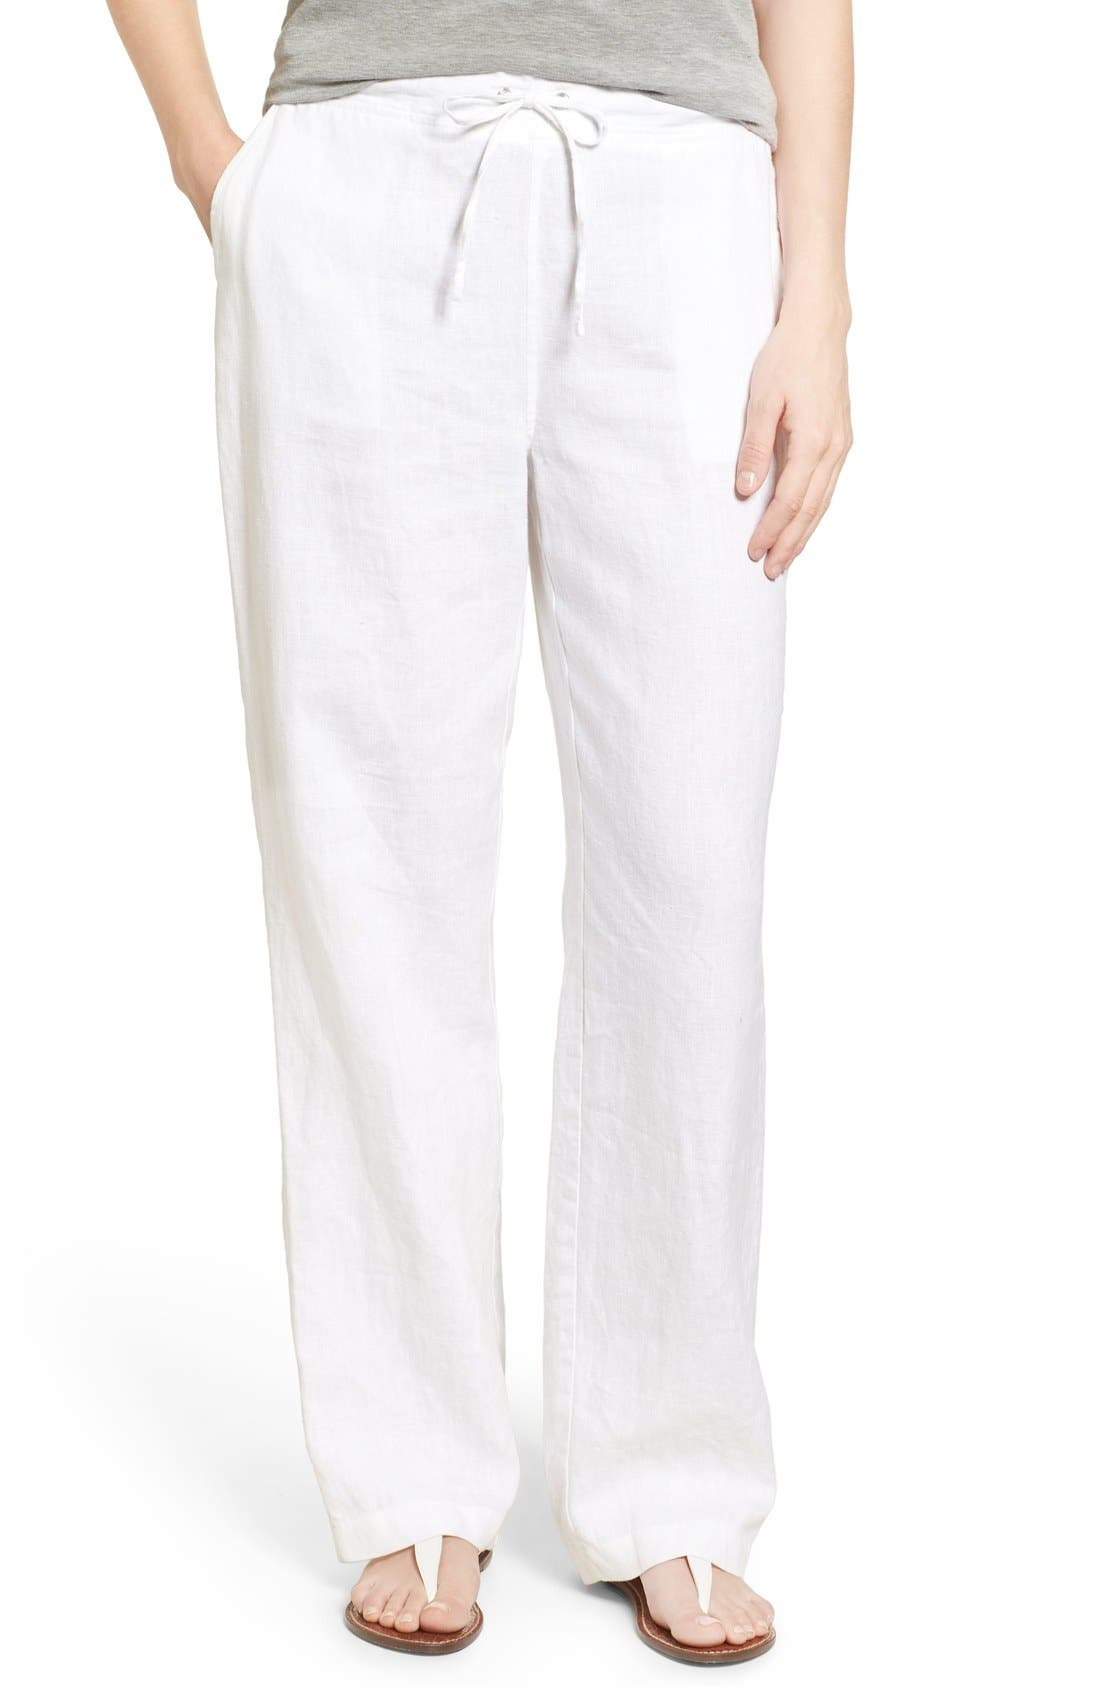 White Linen Pants Womens E4UceKNV